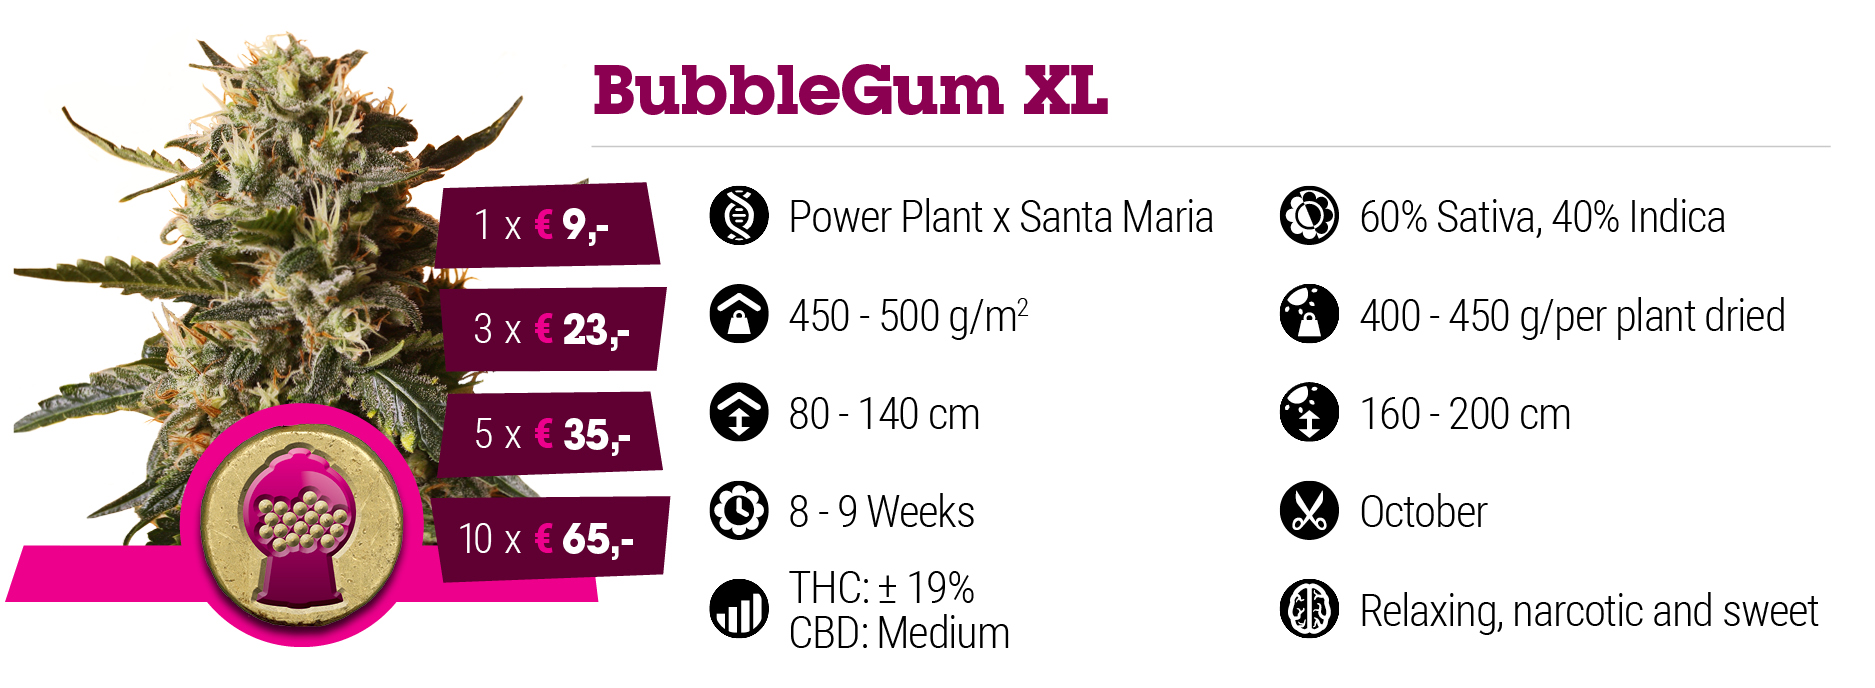 Bubble Gum XL